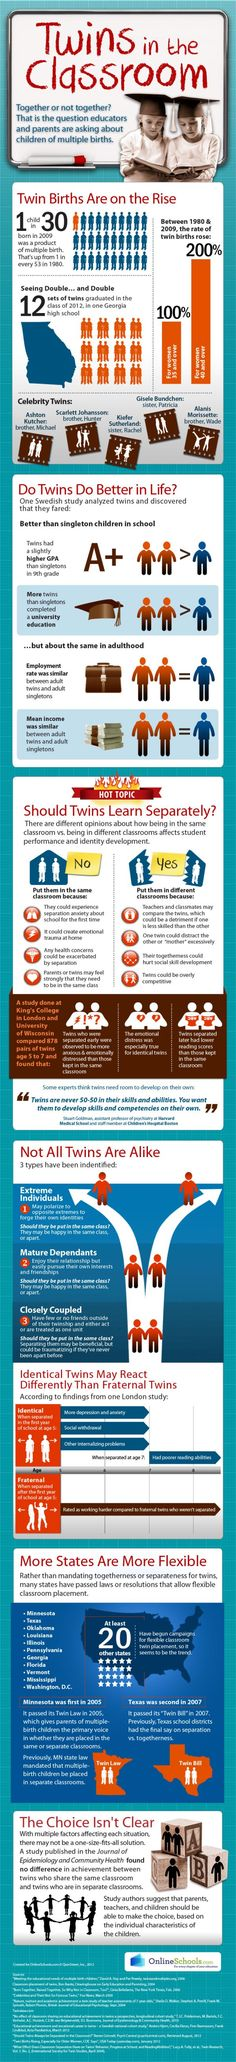 Infographic: Advice for parents about twins in the classroom